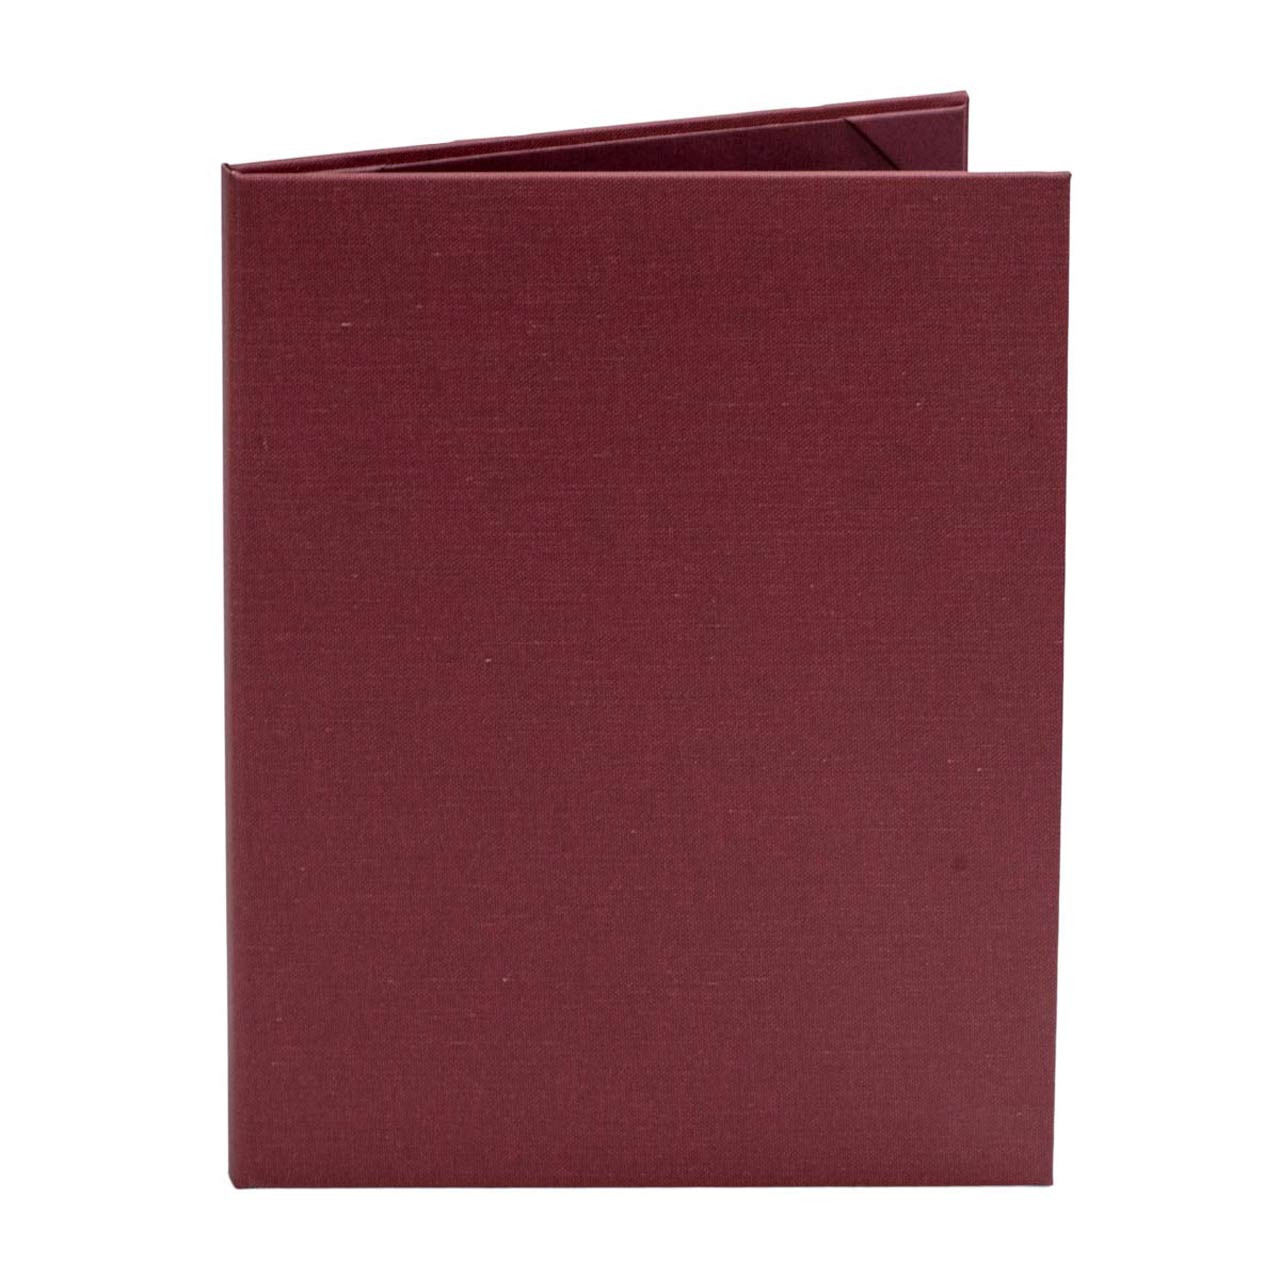 Retro Menu Cover (Burgundy) 8.5 in. x 11 in. Insert, 2-Panel (outside view)